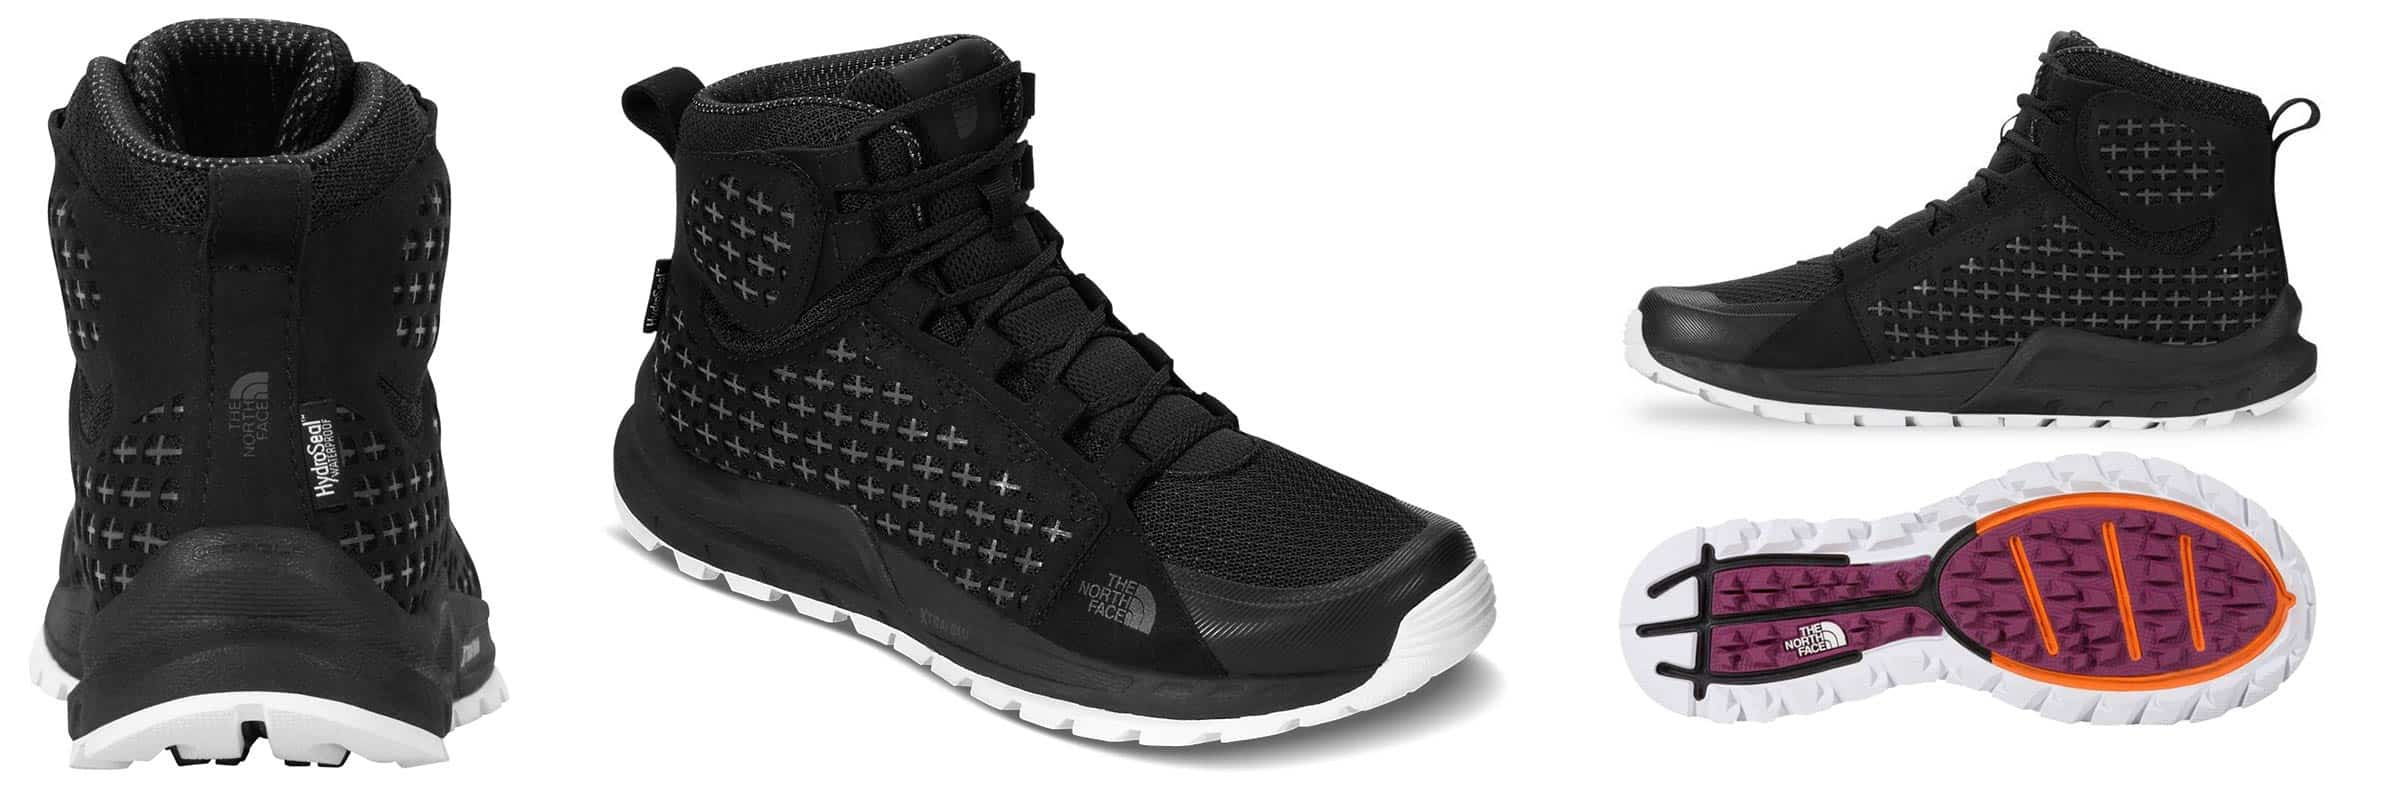 2d44c2685 Discover The North Face Mountain sneaker   Altitude Sports